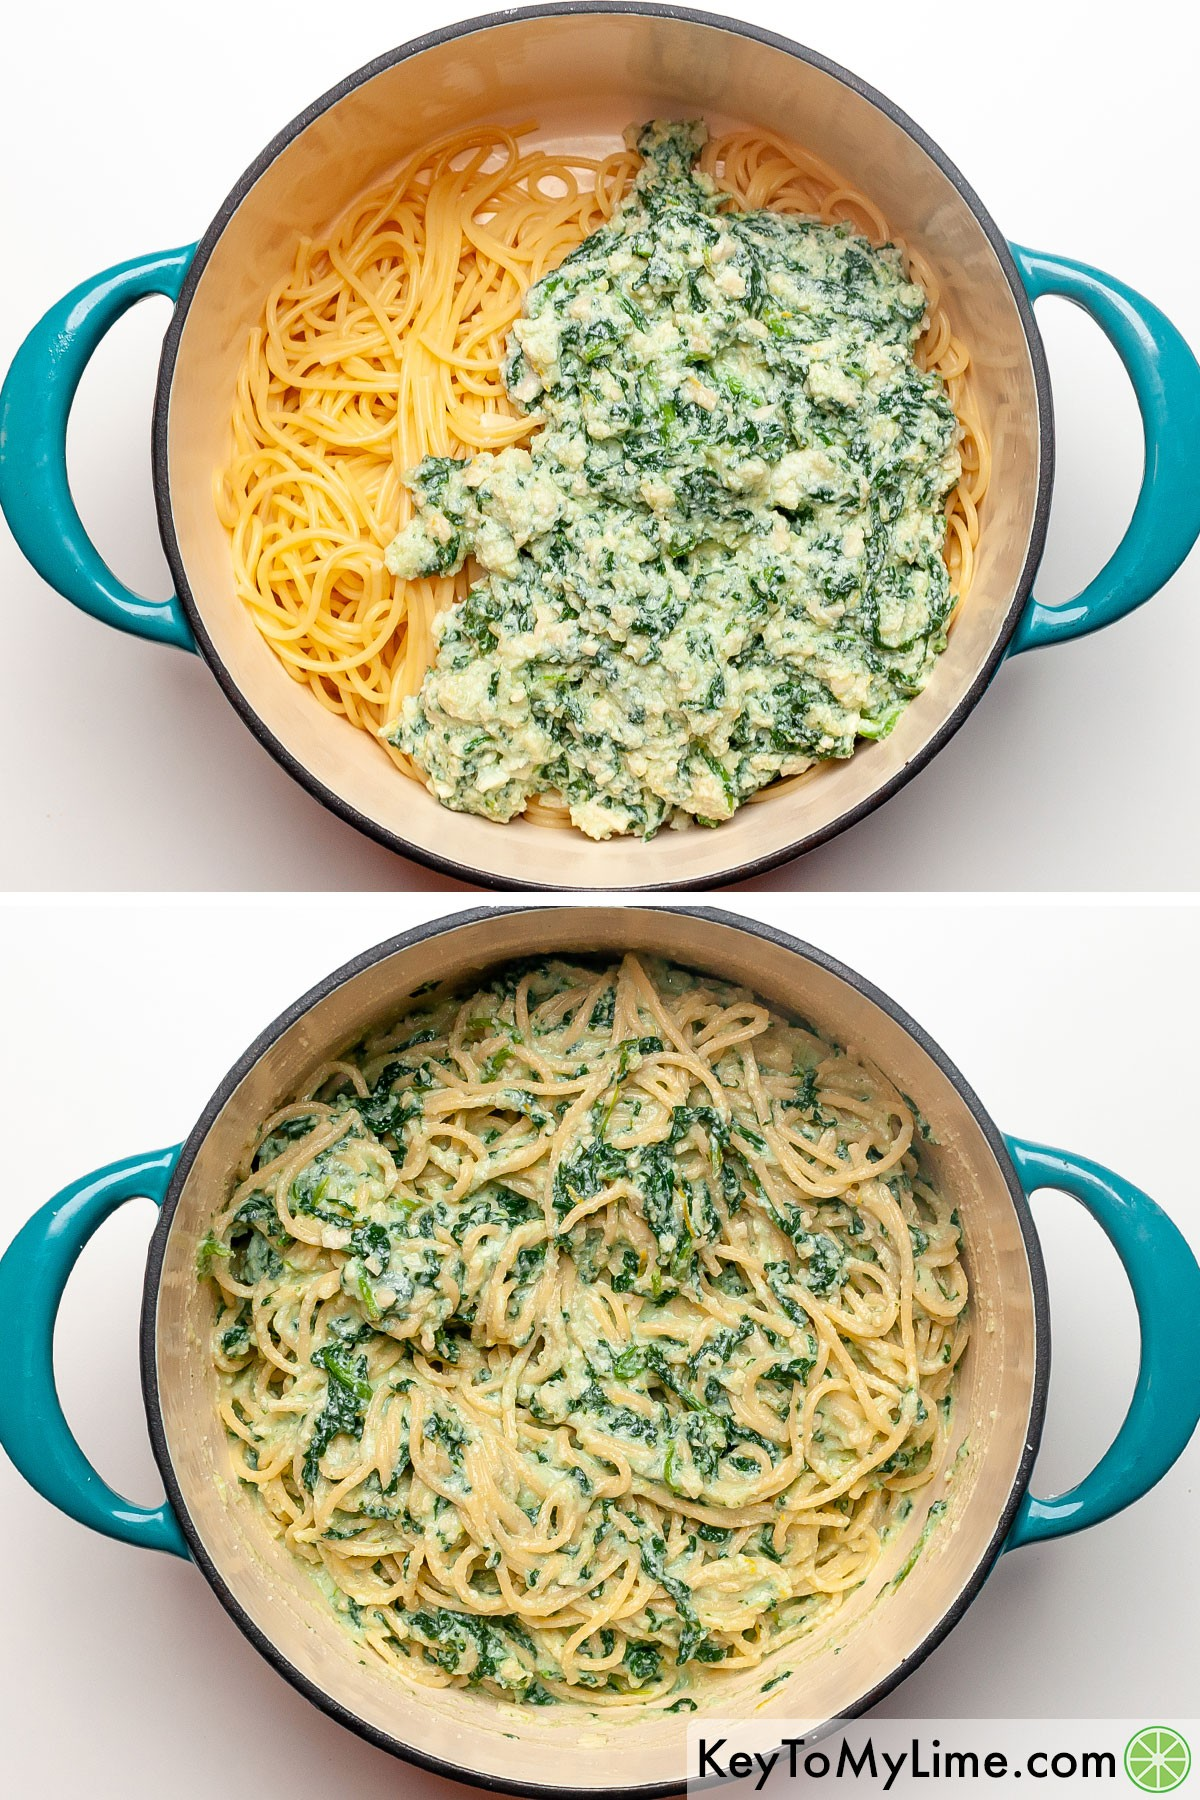 A process collage showing lemon ricotta pasta before and after the sauce is mixed into the cooked pasta.